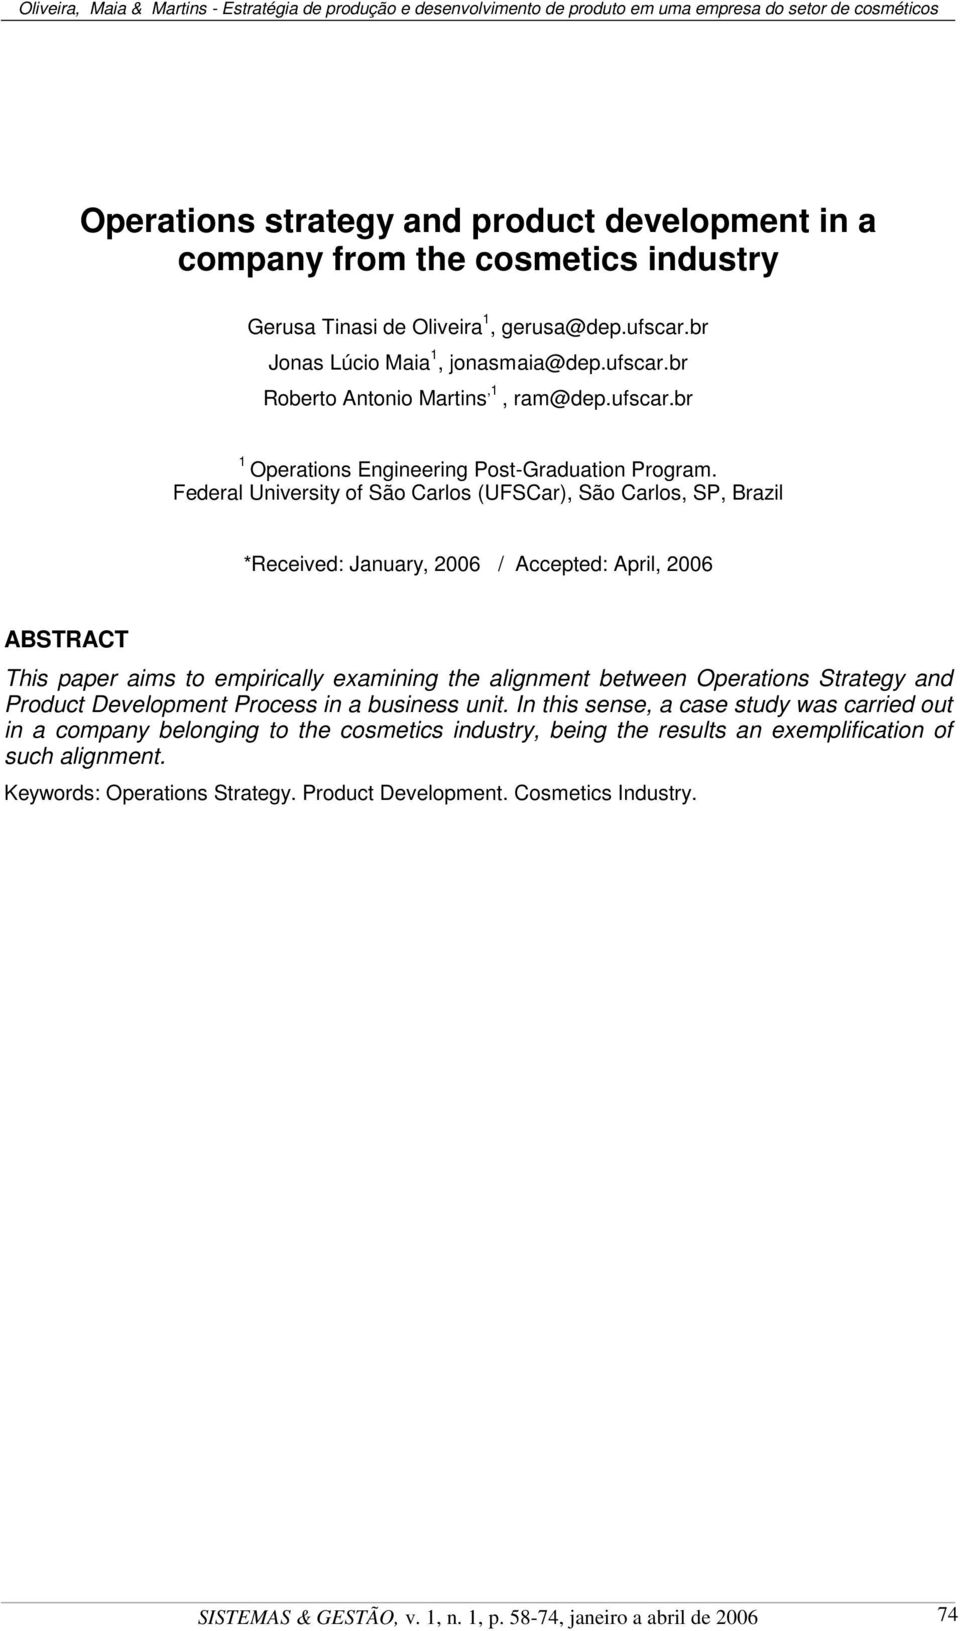 Federal University of São Carlos (UFSCar), São Carlos, SP, Brazil *Received: January, 2006 / Accepted: April, 2006 ABSTRACT This paper aims to empirically examining the alignment between Operations